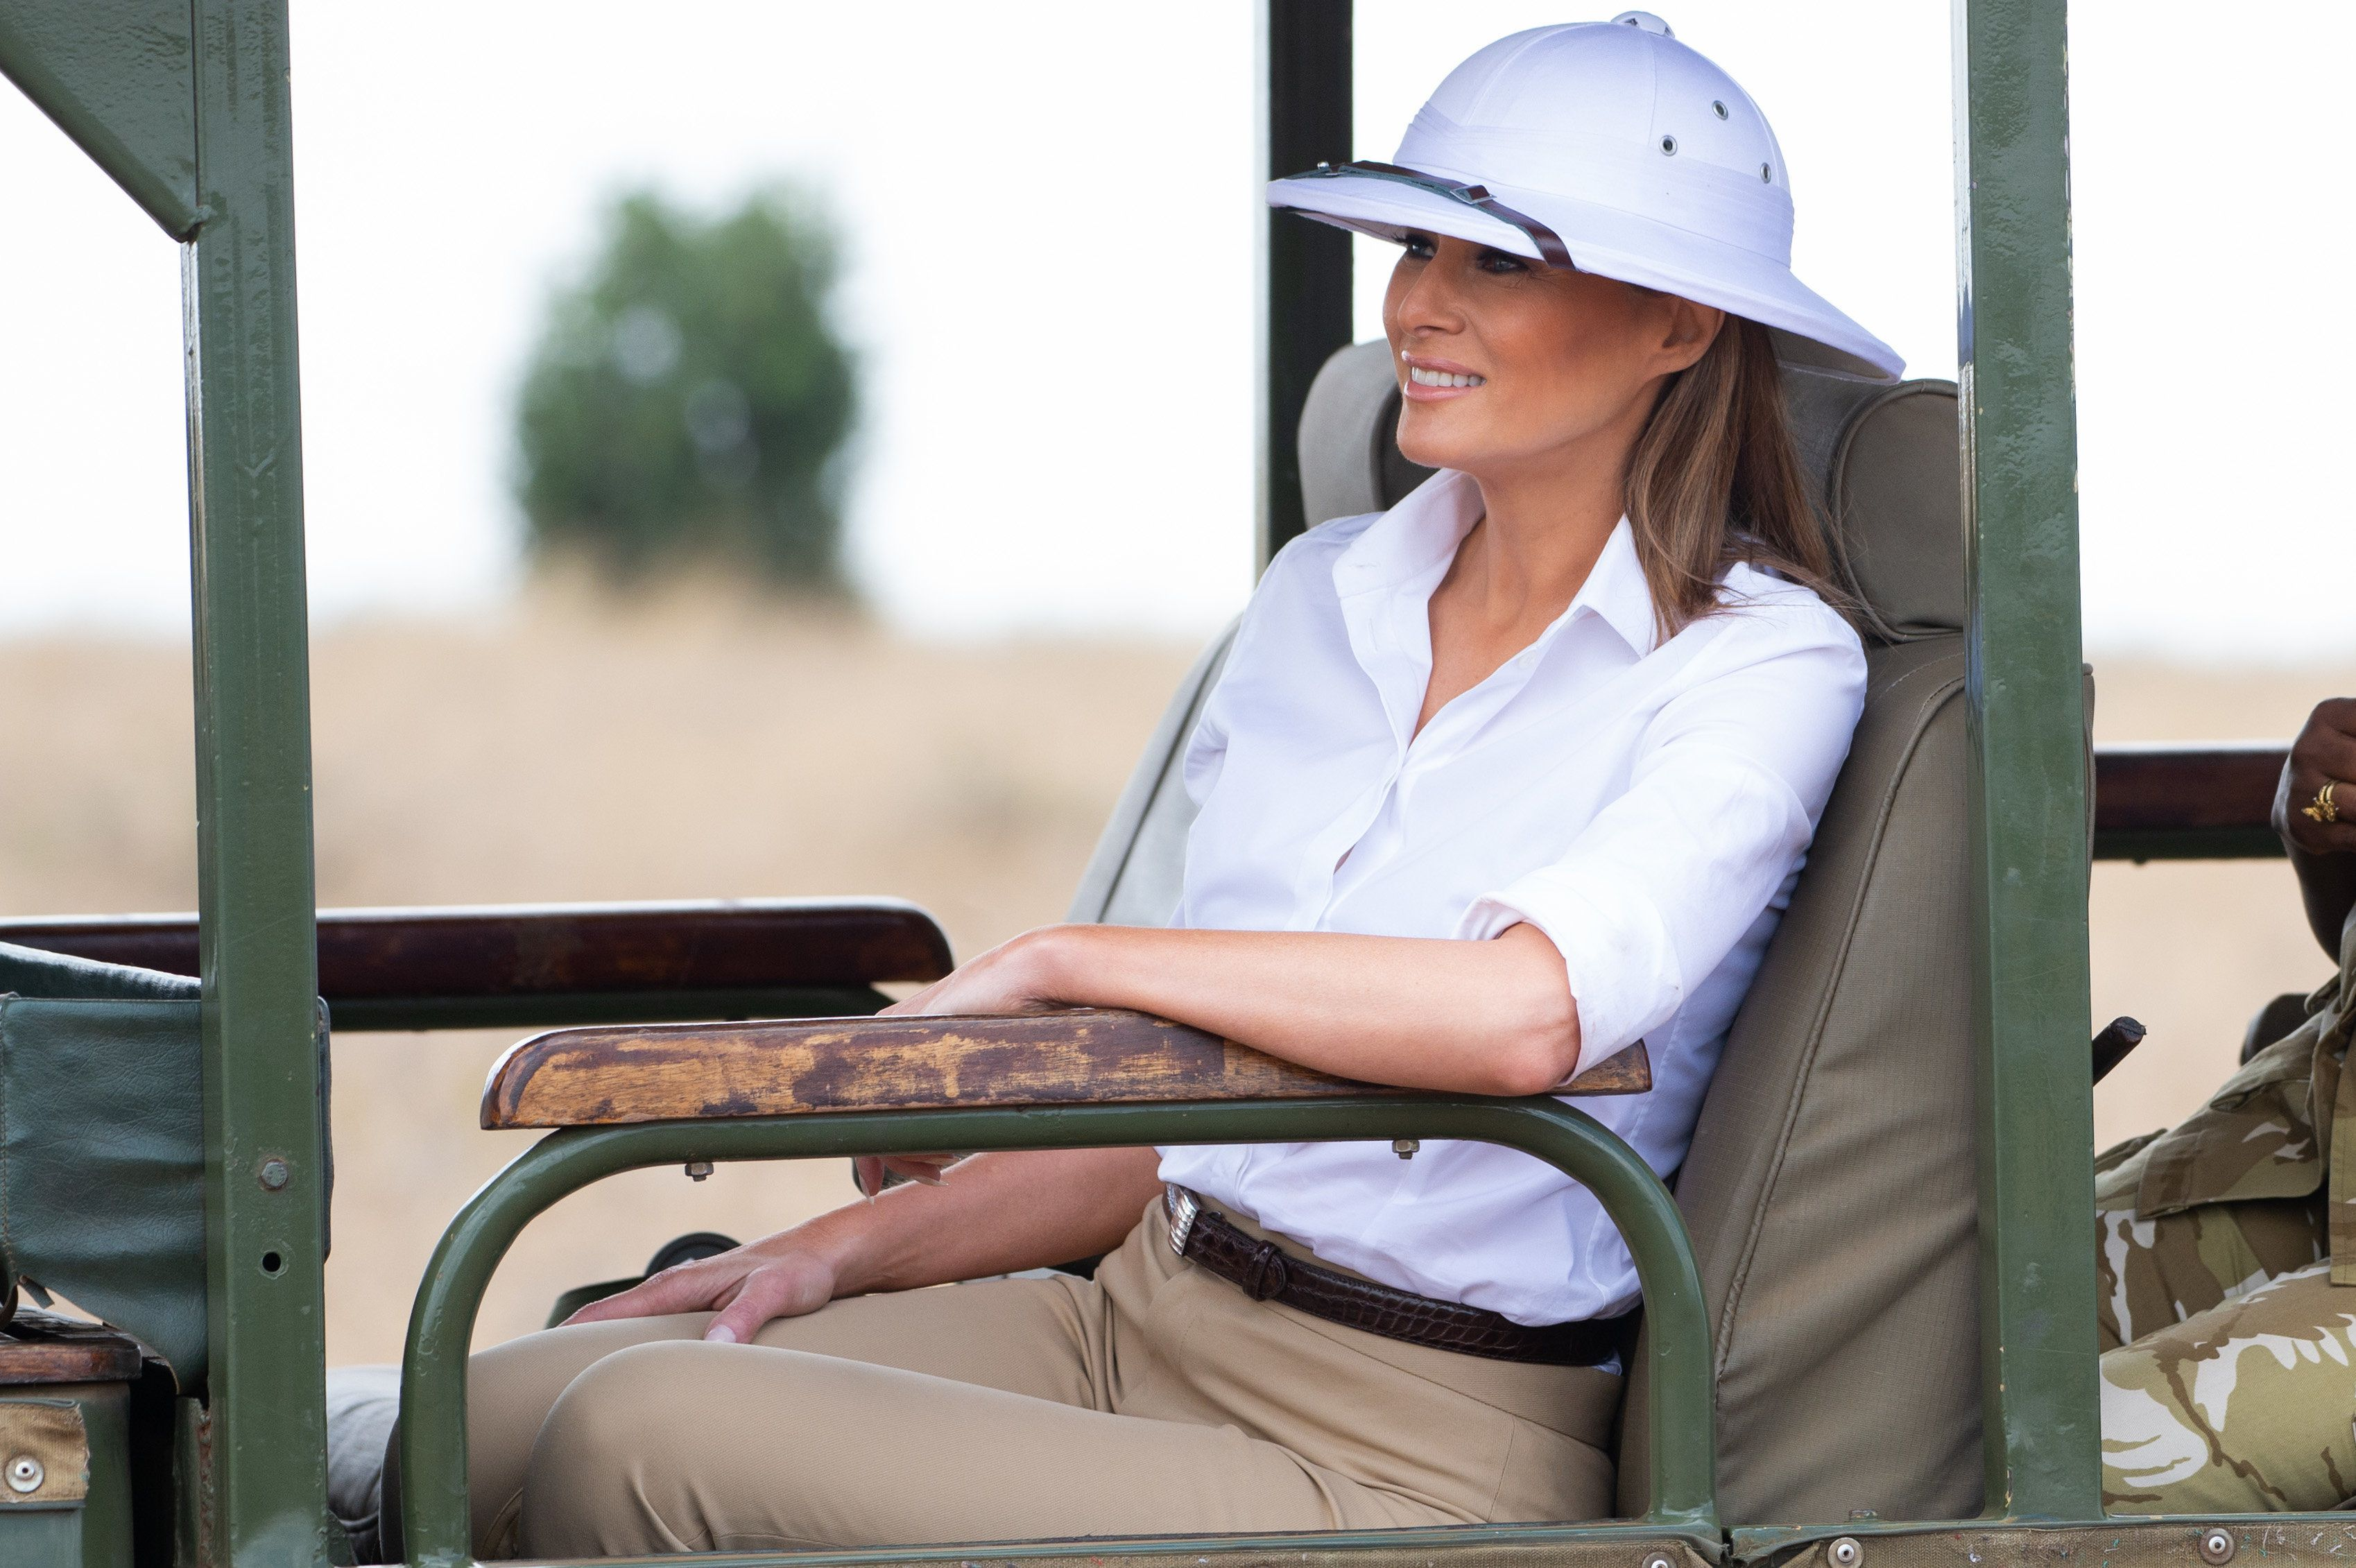 Melania Trump's Colonialist Outfit During Africa Trip Has Twitter Users